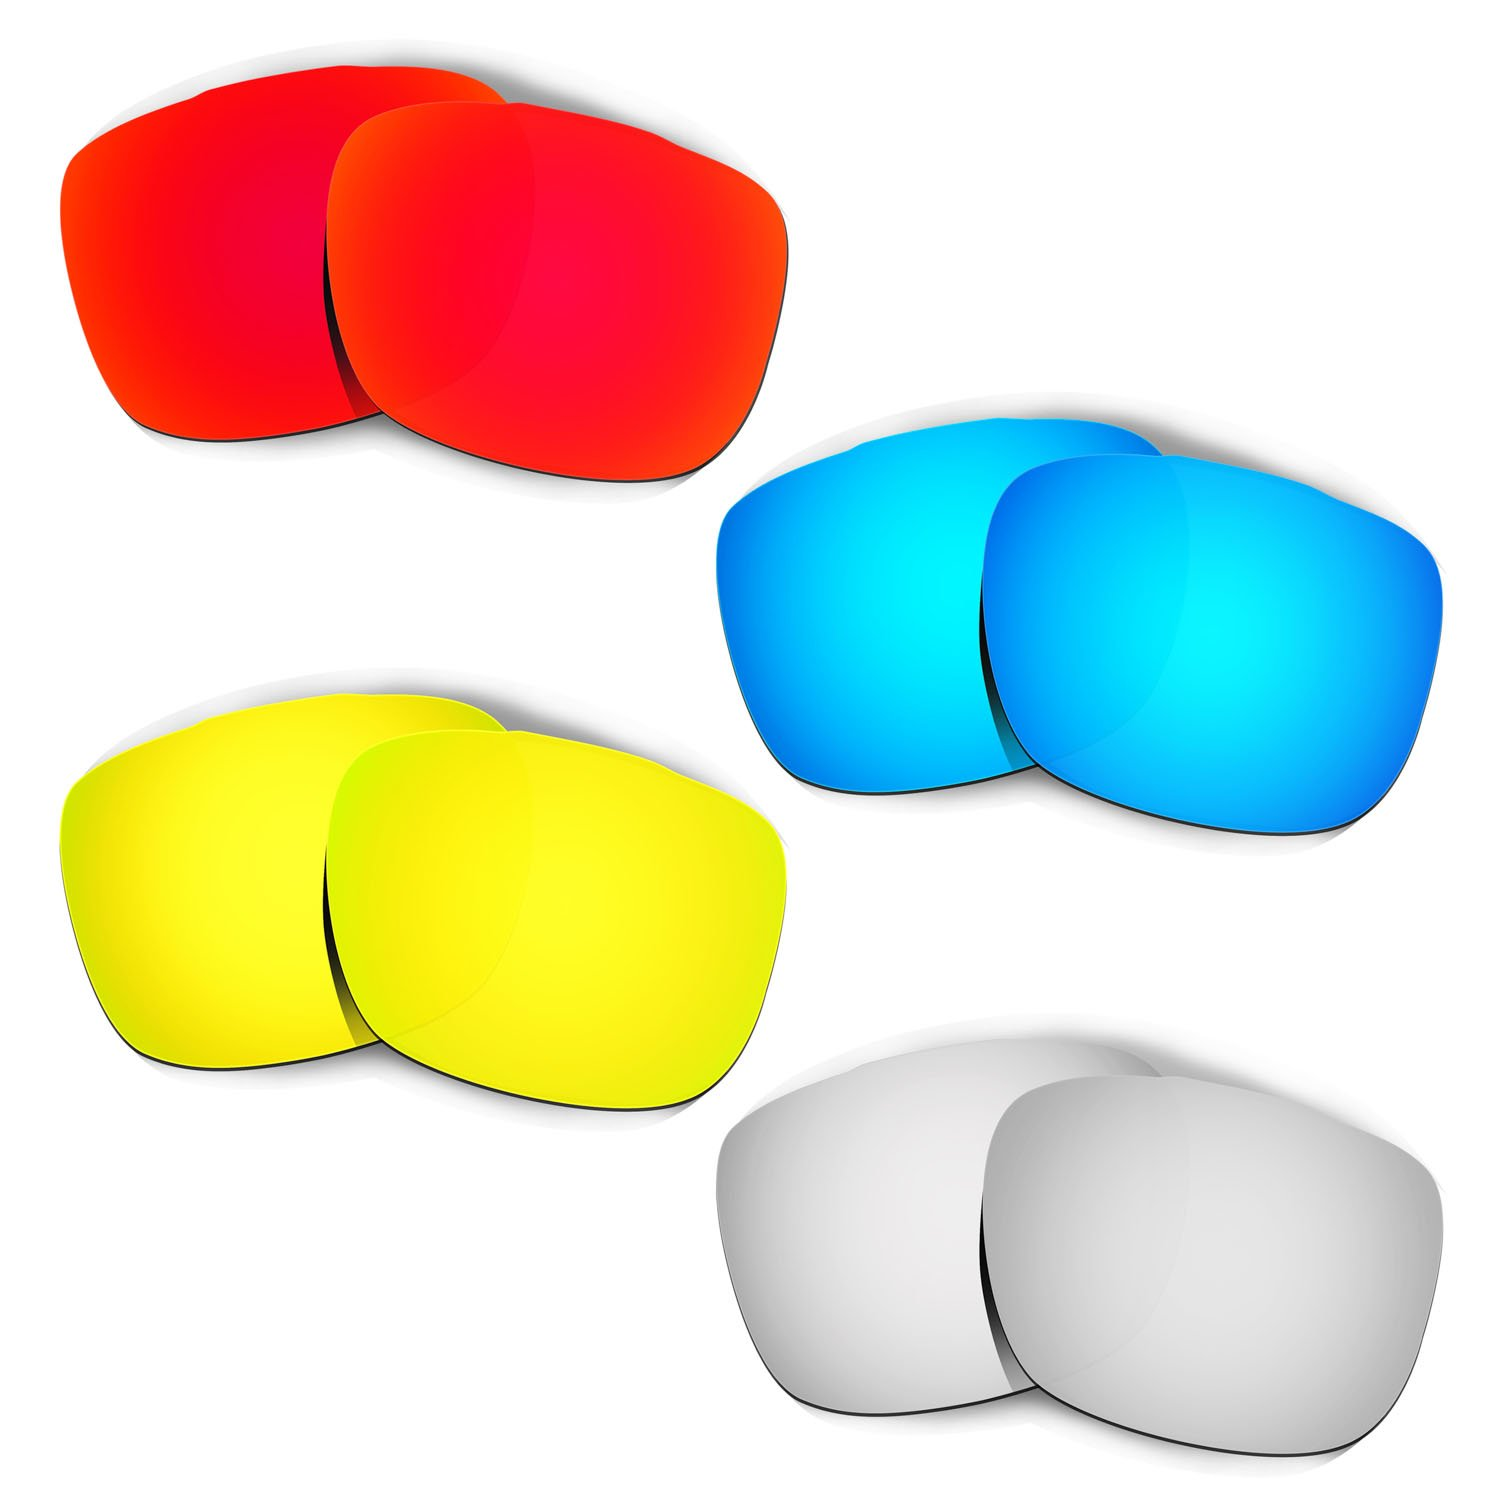 Hkuco Plus Mens Replacement Lenses For Oakley TwoFace Red/Blue/24K Gold/Titanium Sunglasses